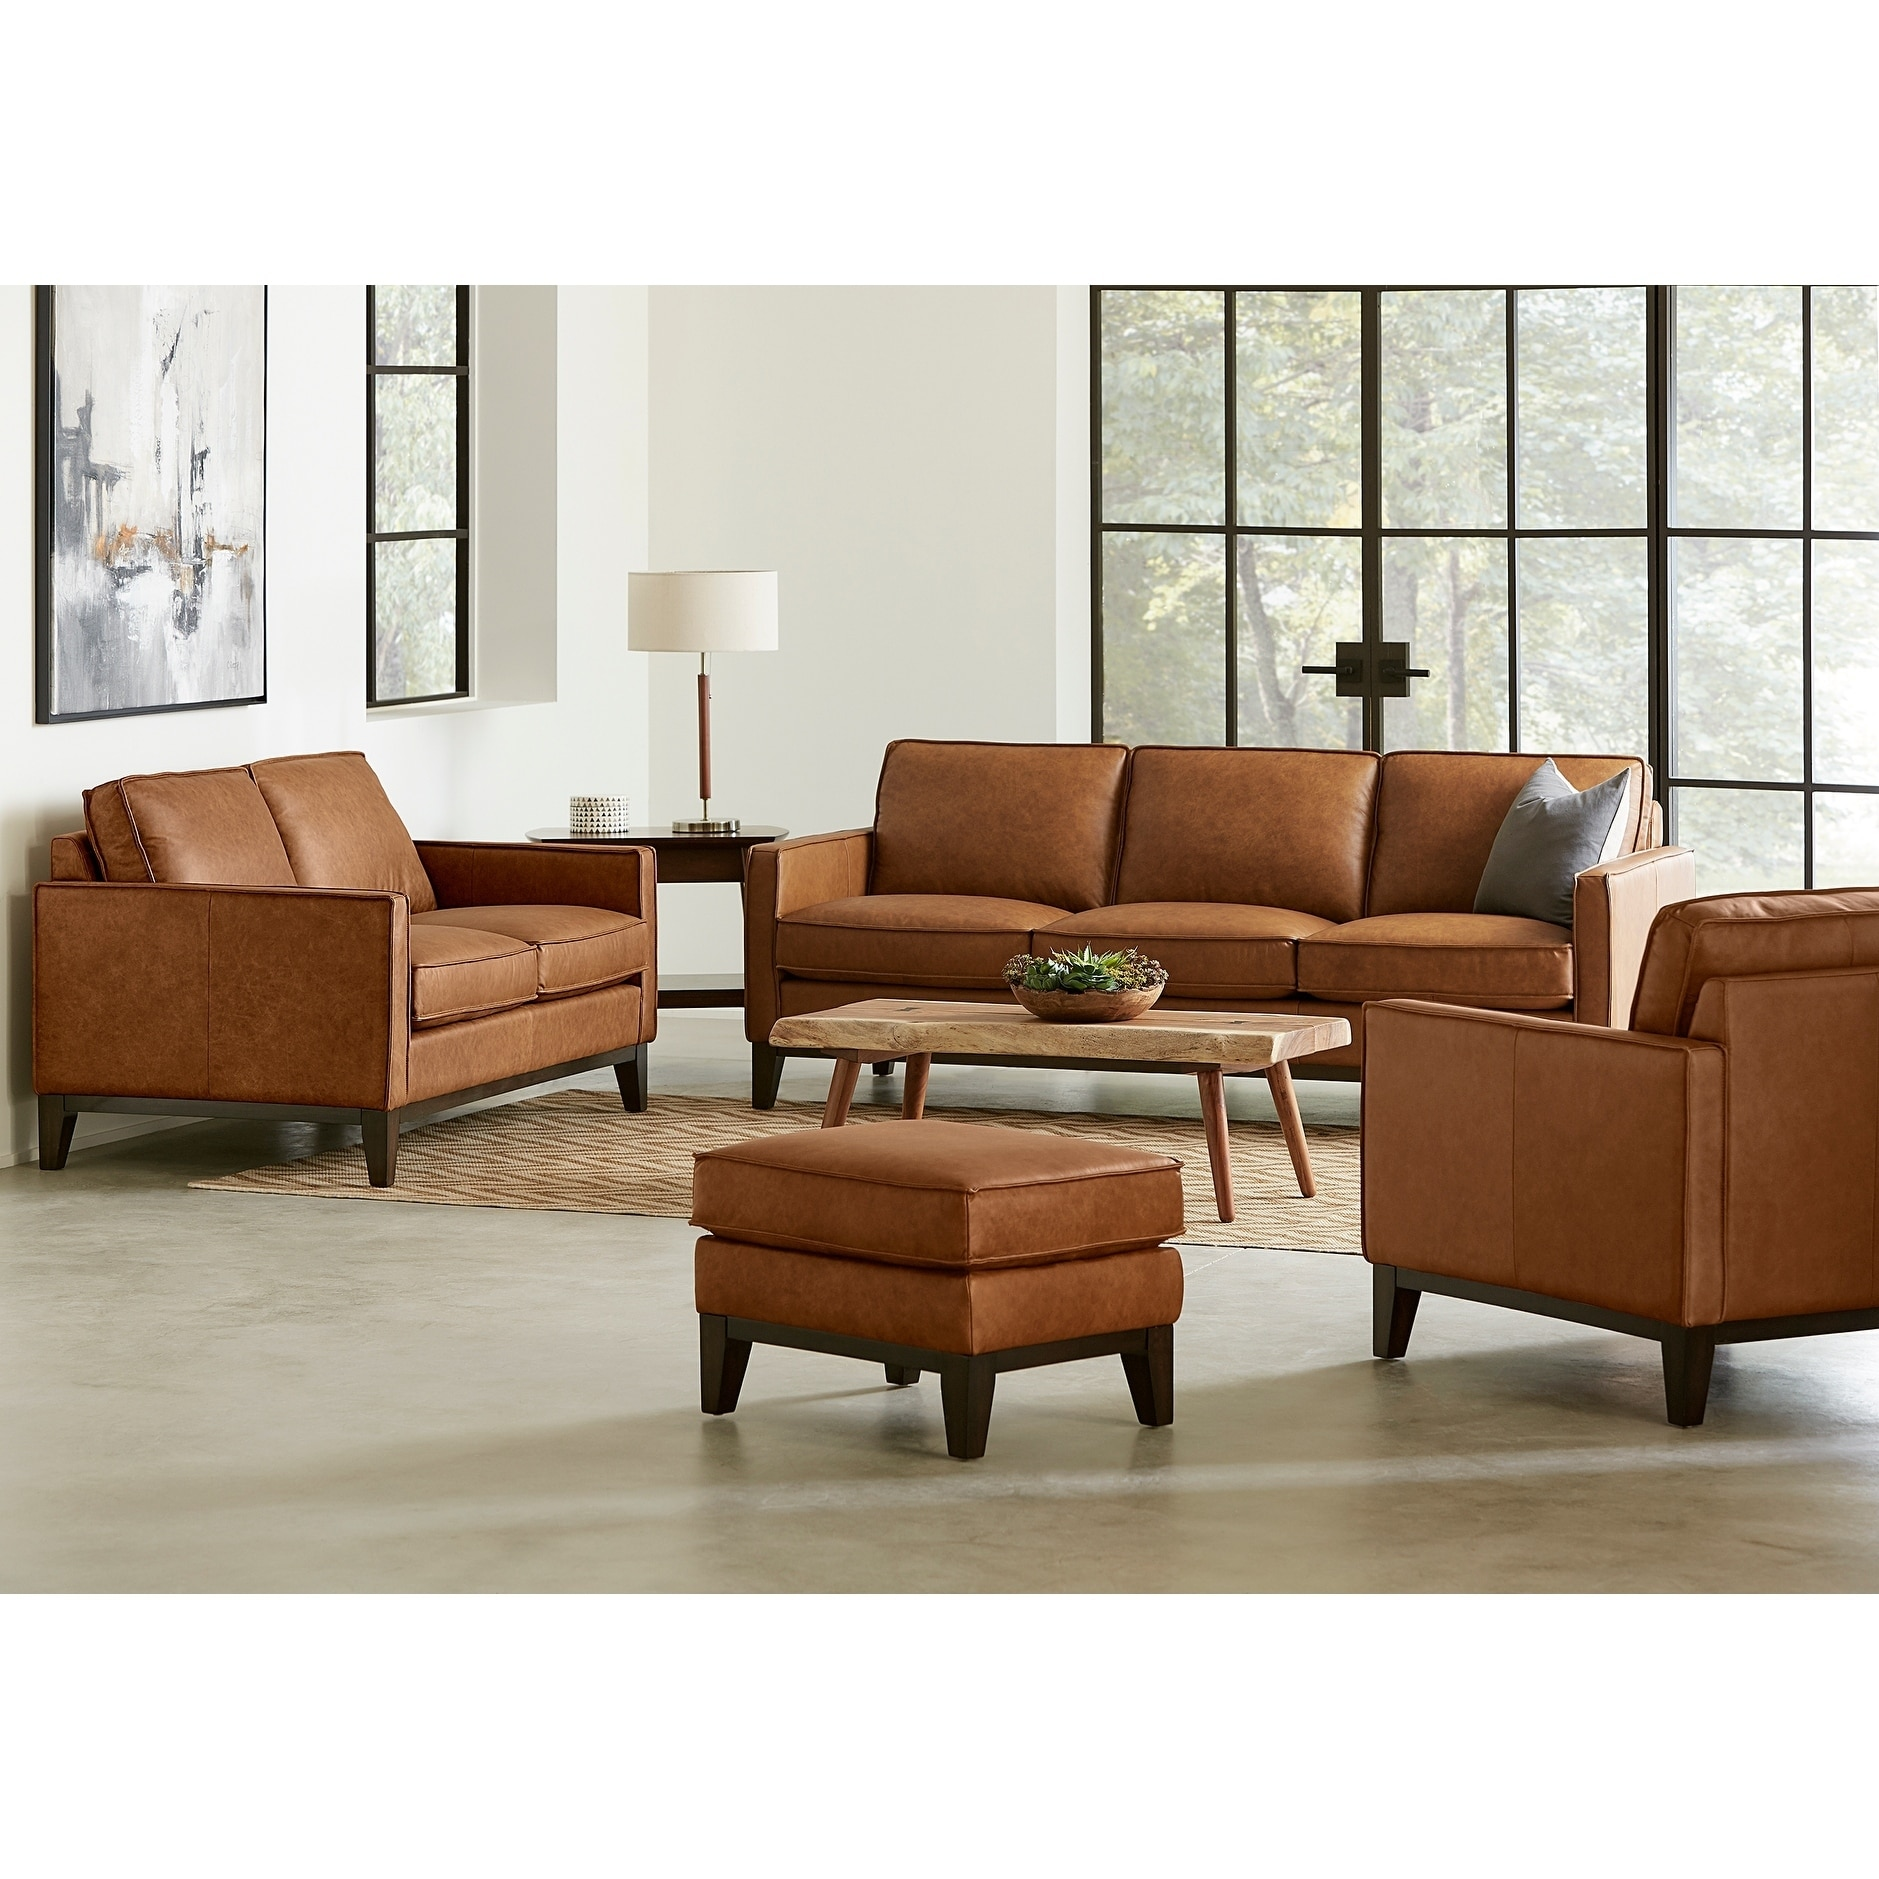 Dark Brown Leather Furniture Set Sofa Loveseat Accent Chair Ottoman Sofas Chairs